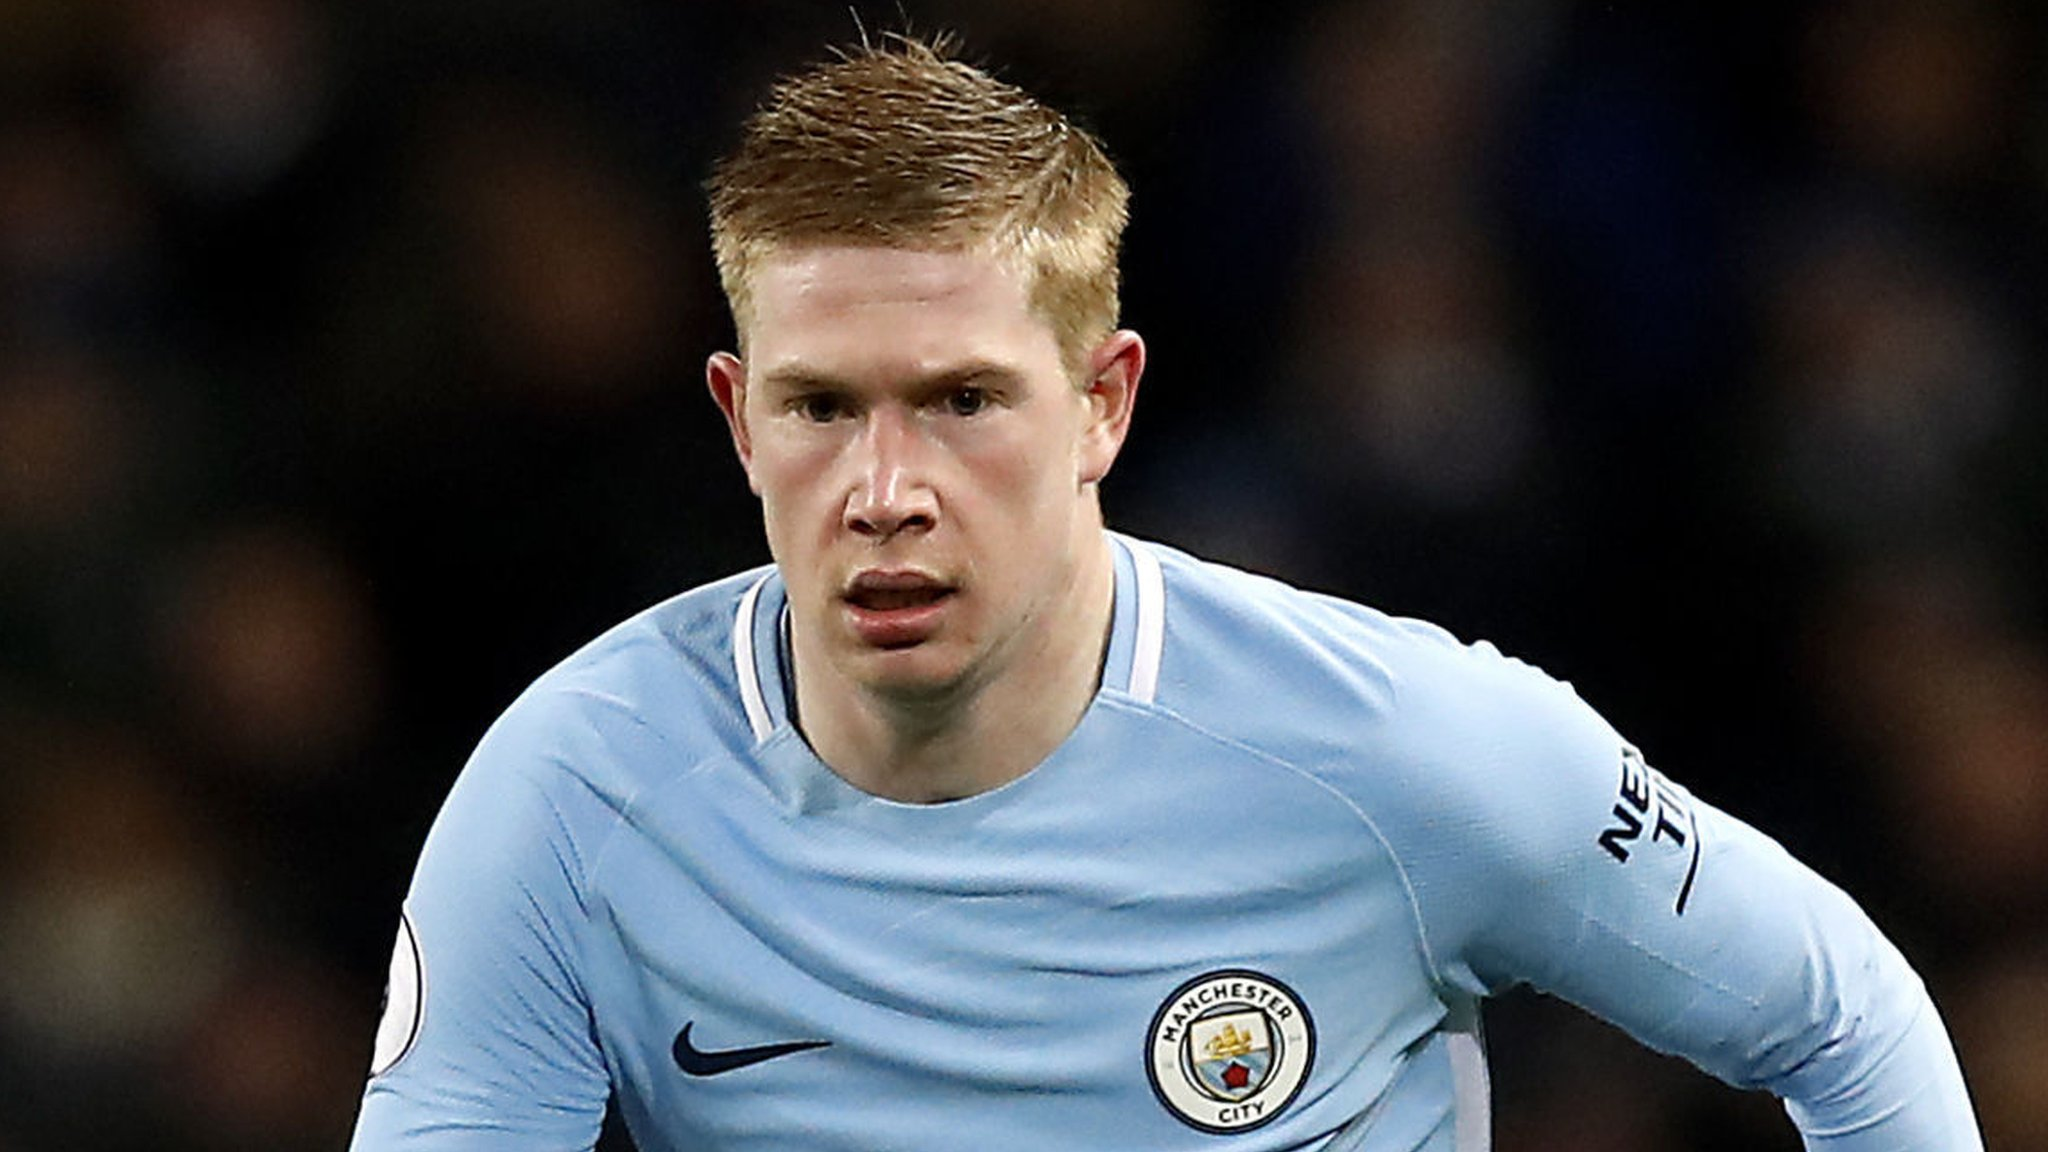 De Bruyne signs new Man City deal to 2023